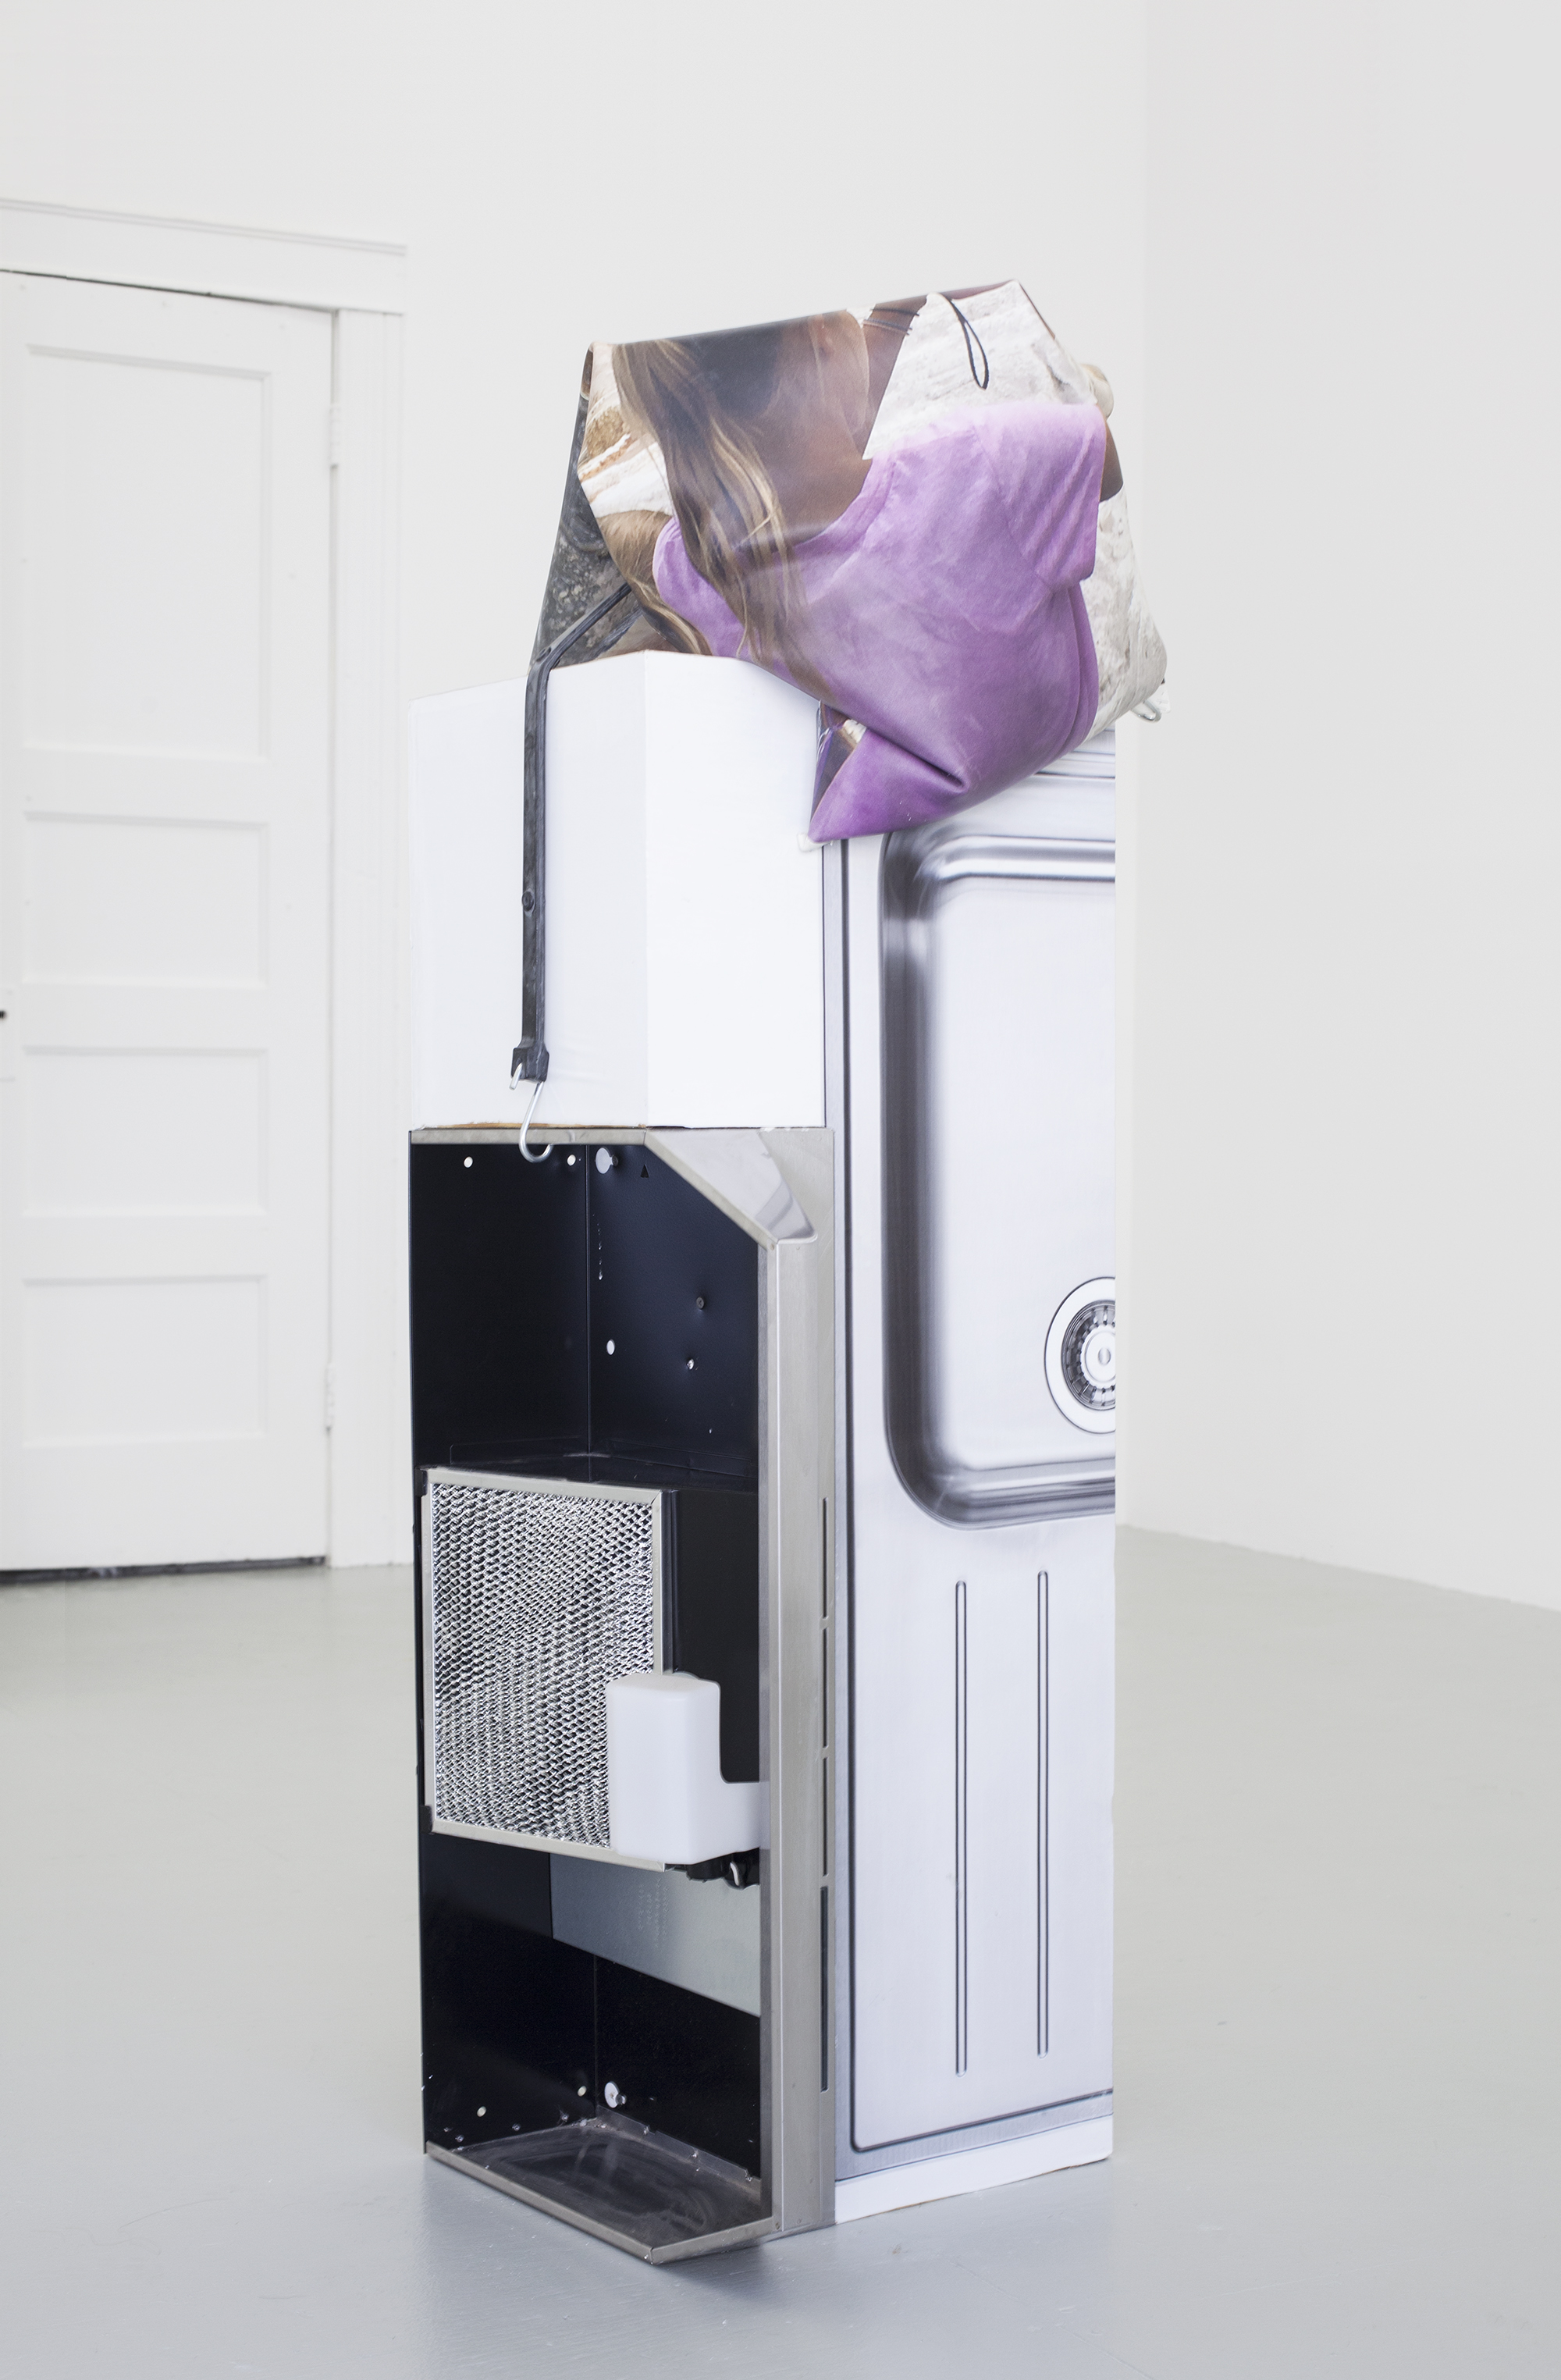 Ashley Carter Too Folds, 2015 Oven hood, vehicle wrap, plaster, digital print on silicone, and wood